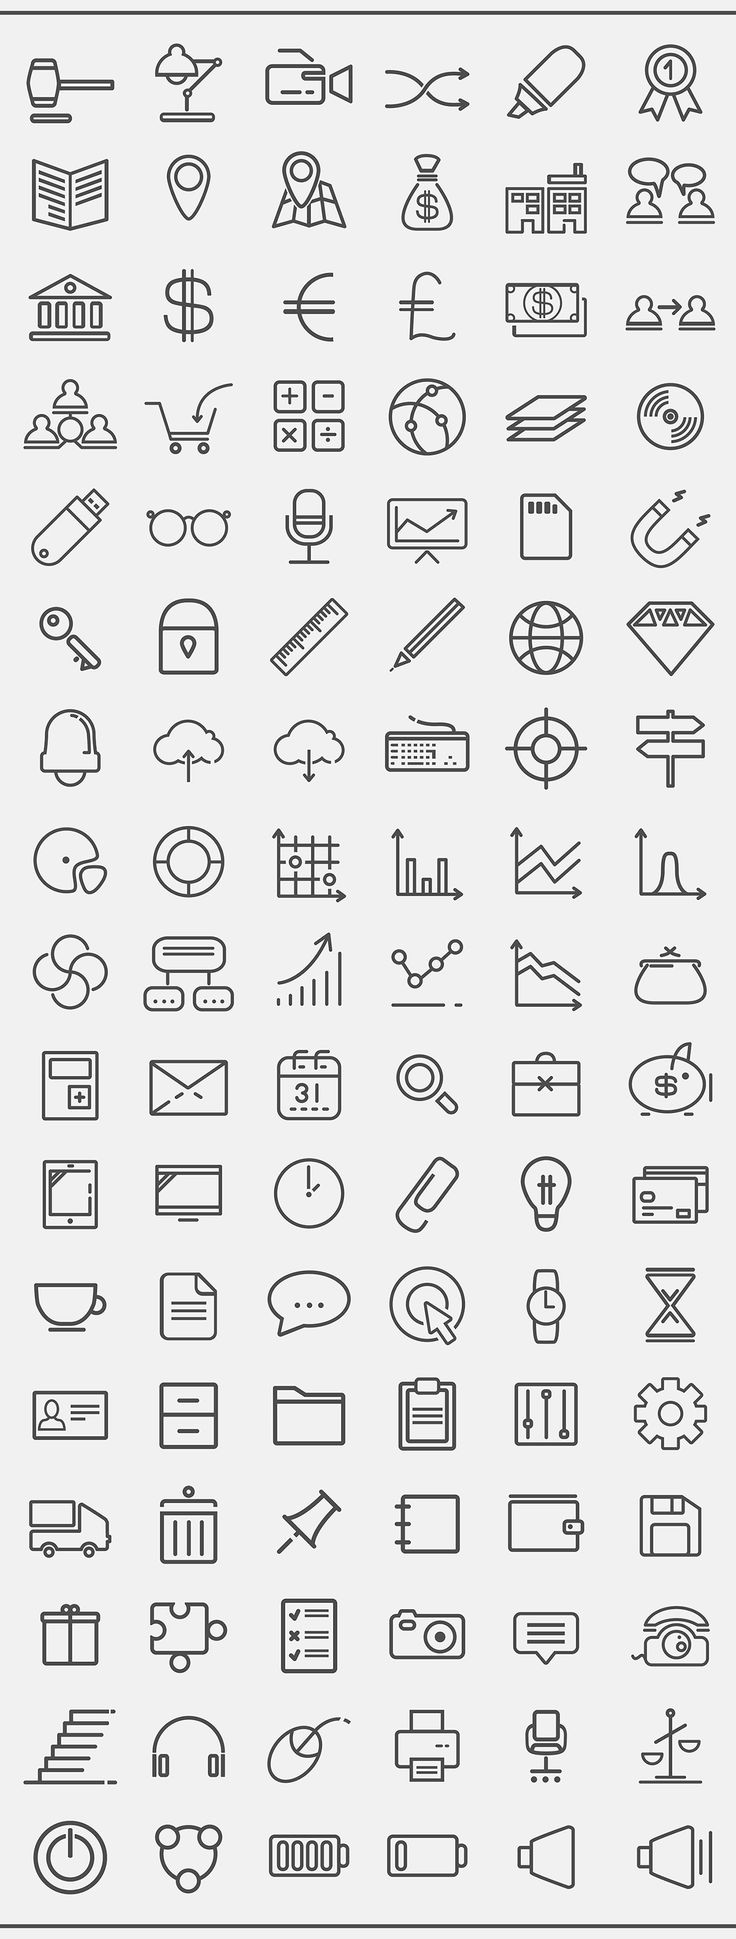 This is a set of 102 stroke icons that are fully scalable. Useful for mobile apps, UI and Web.